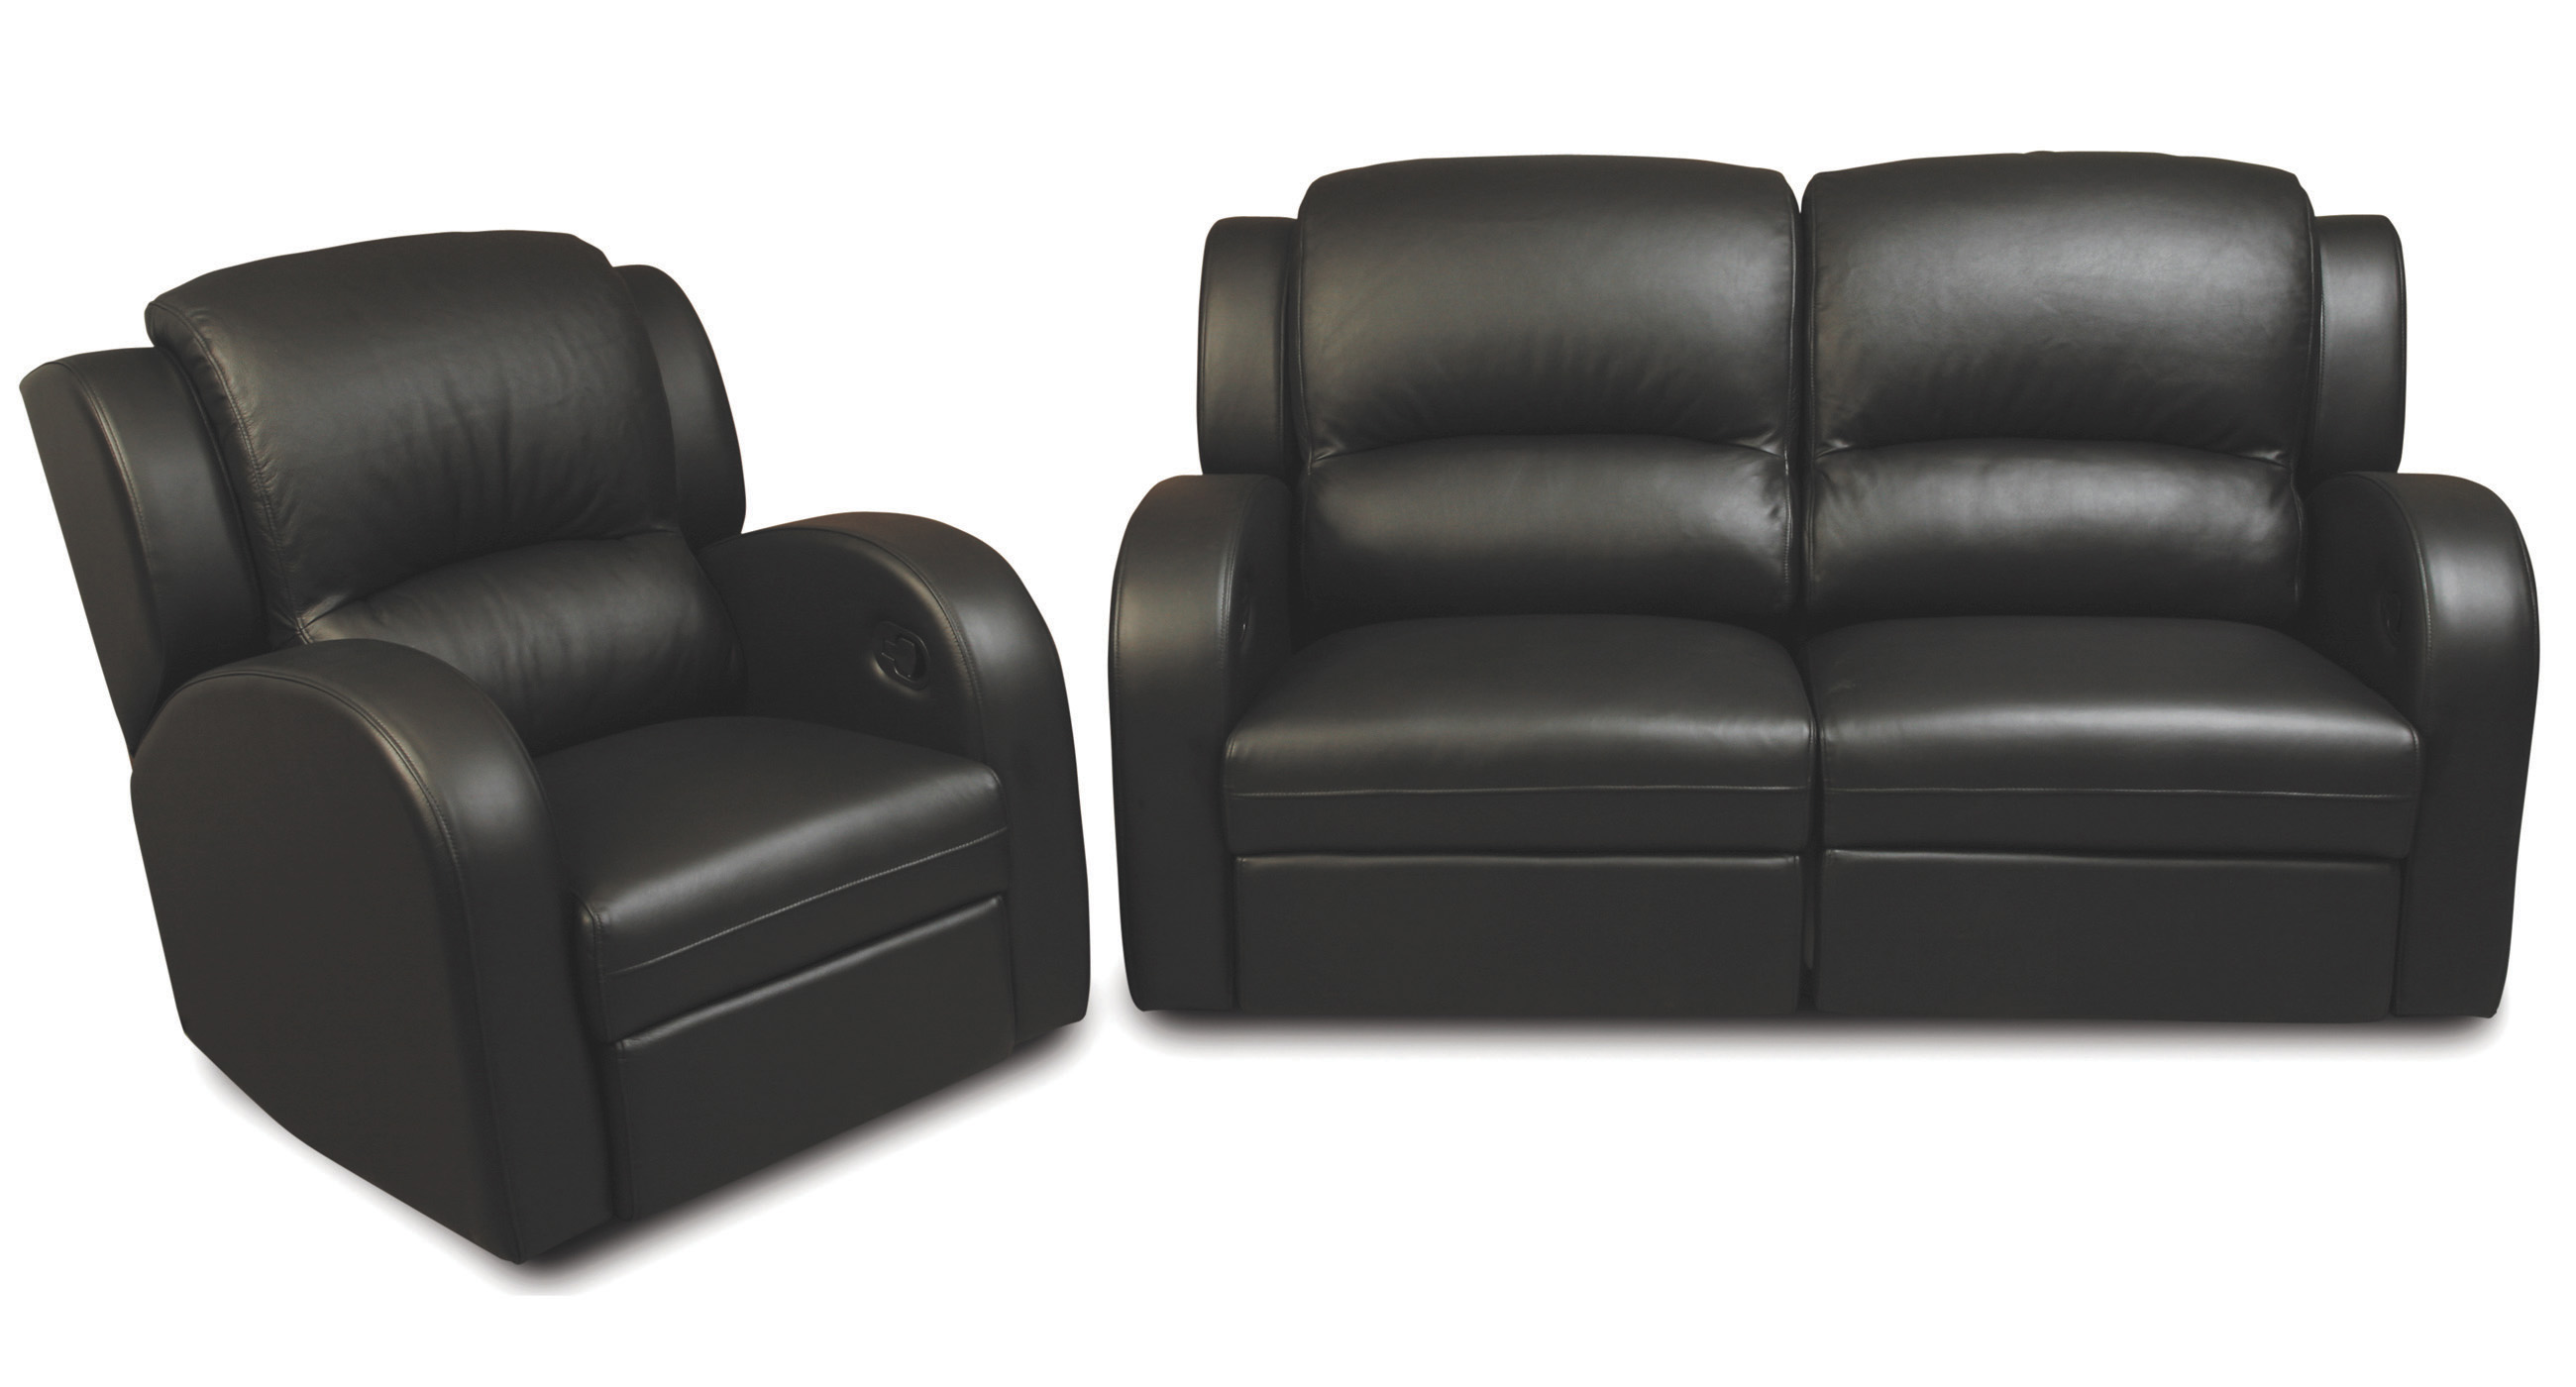 Deco Reclining Sofa and Chairs